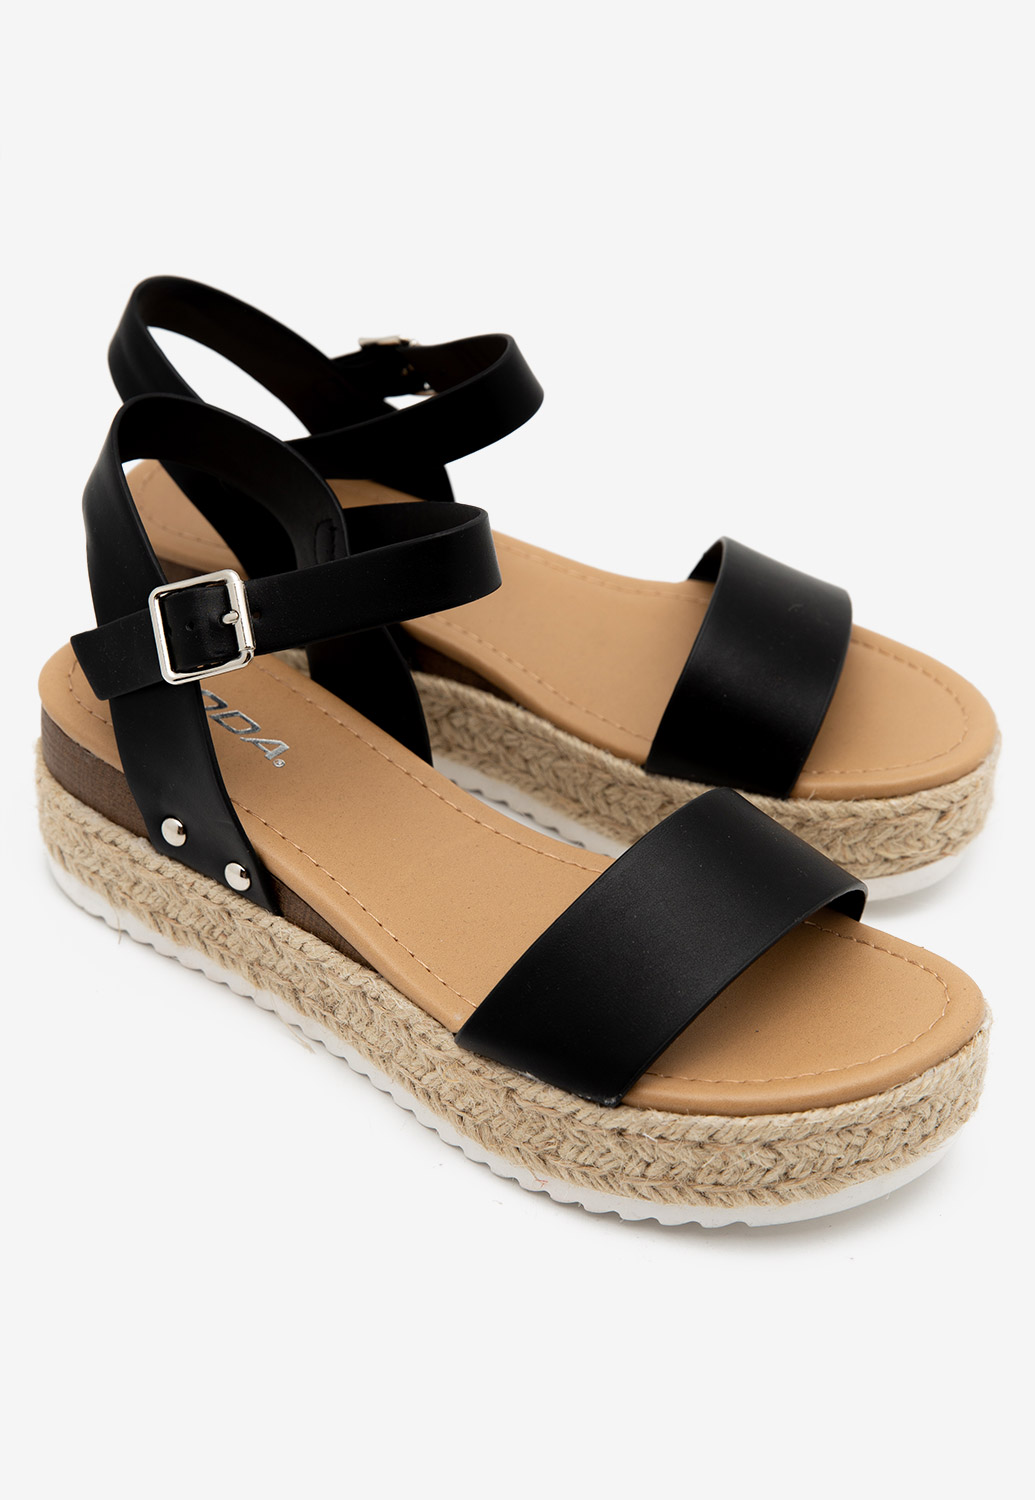 Double Strap Faux Leather Wedge Sandals